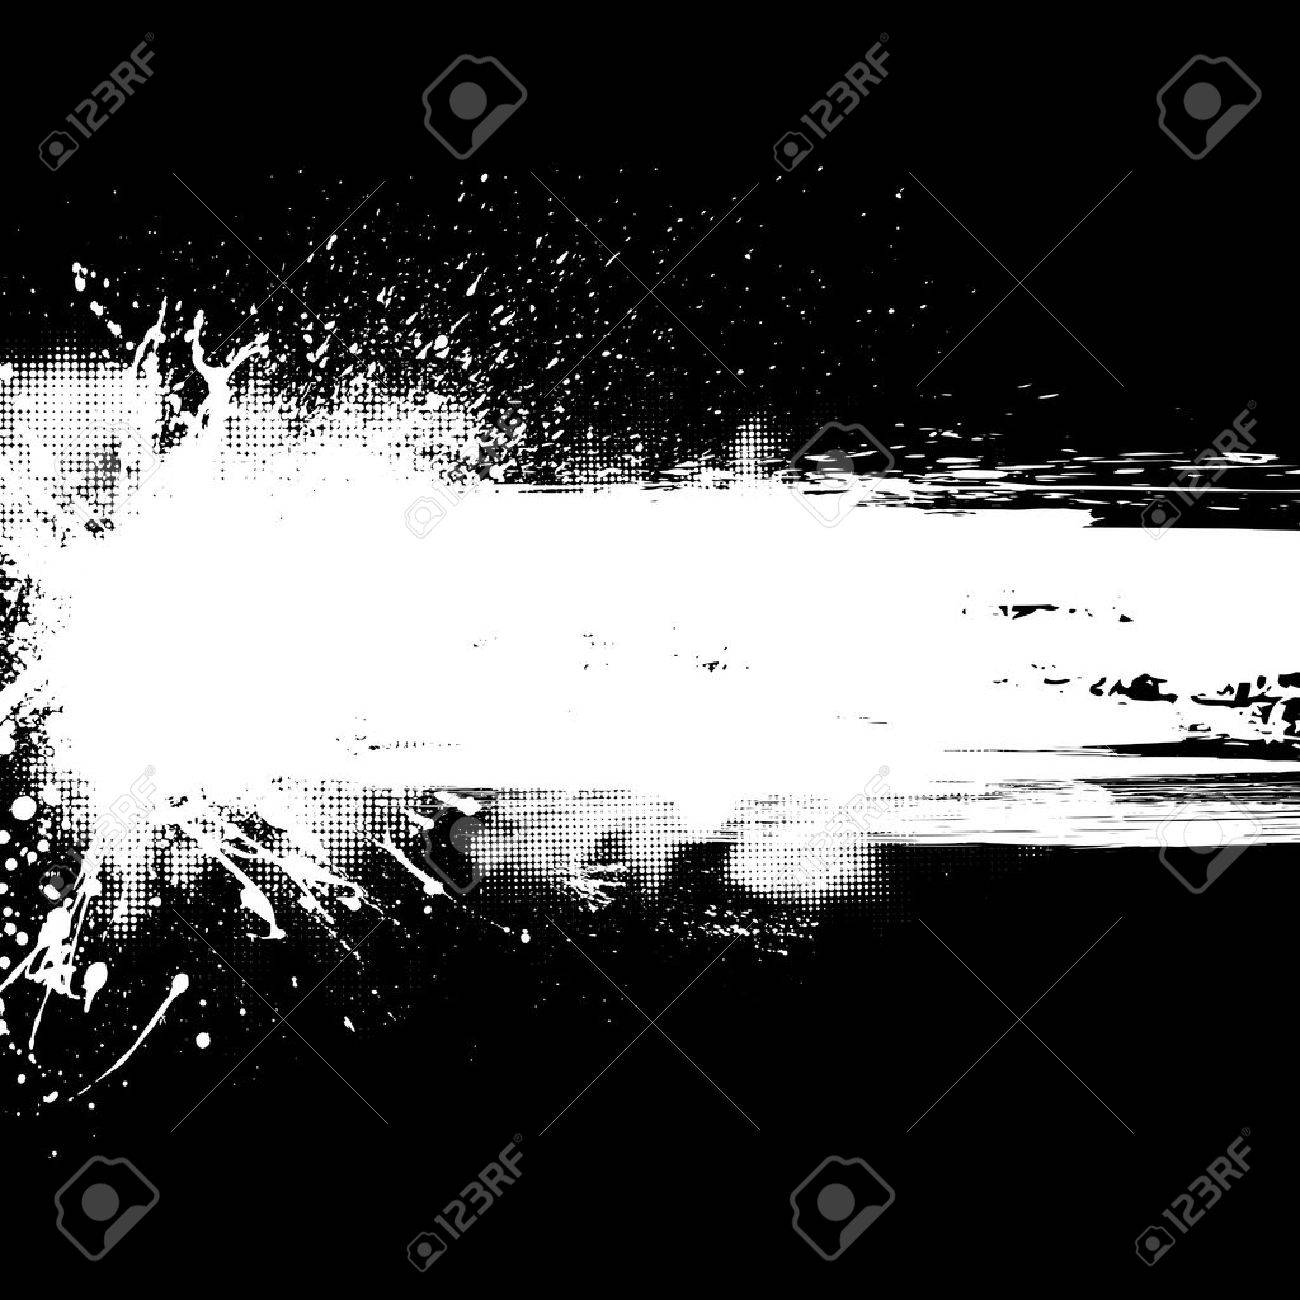 Black background with white ink blots and halftones. - 43853783